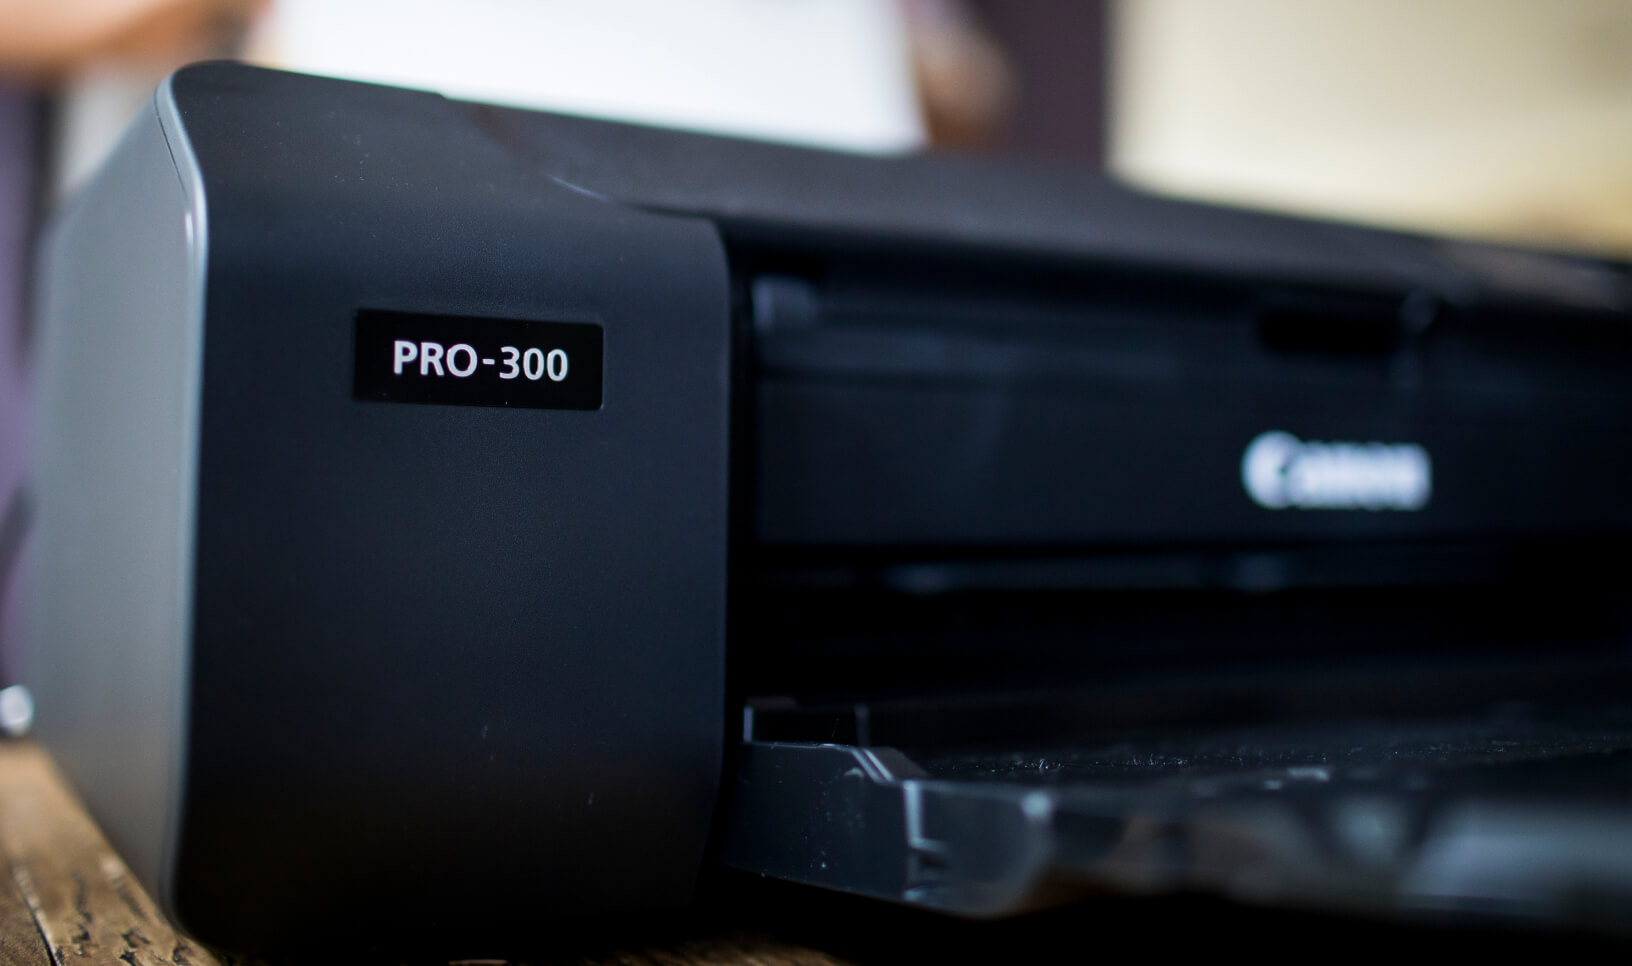 Close-up image of the Canon imagePROGRAF PRO-300 printer